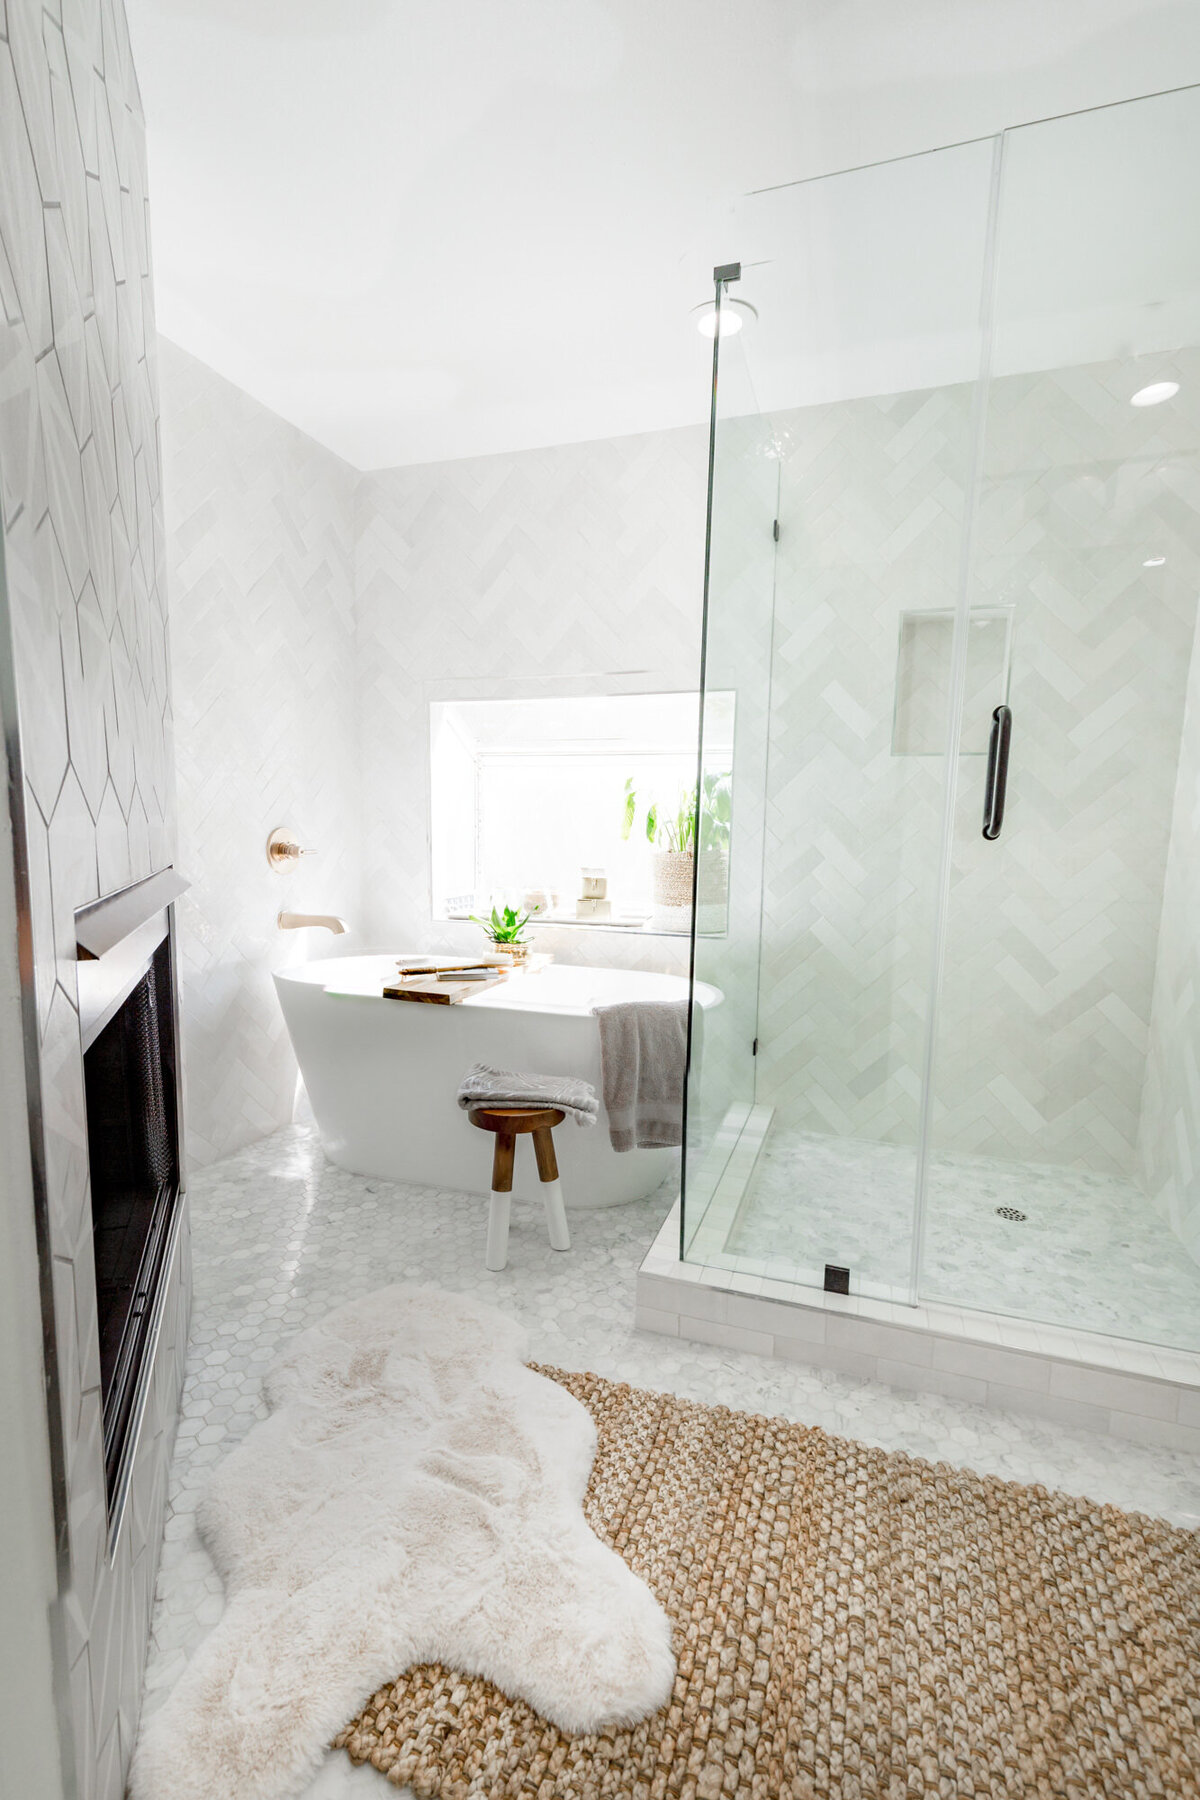 The Posh Home Bathroom Remodel HB Photo